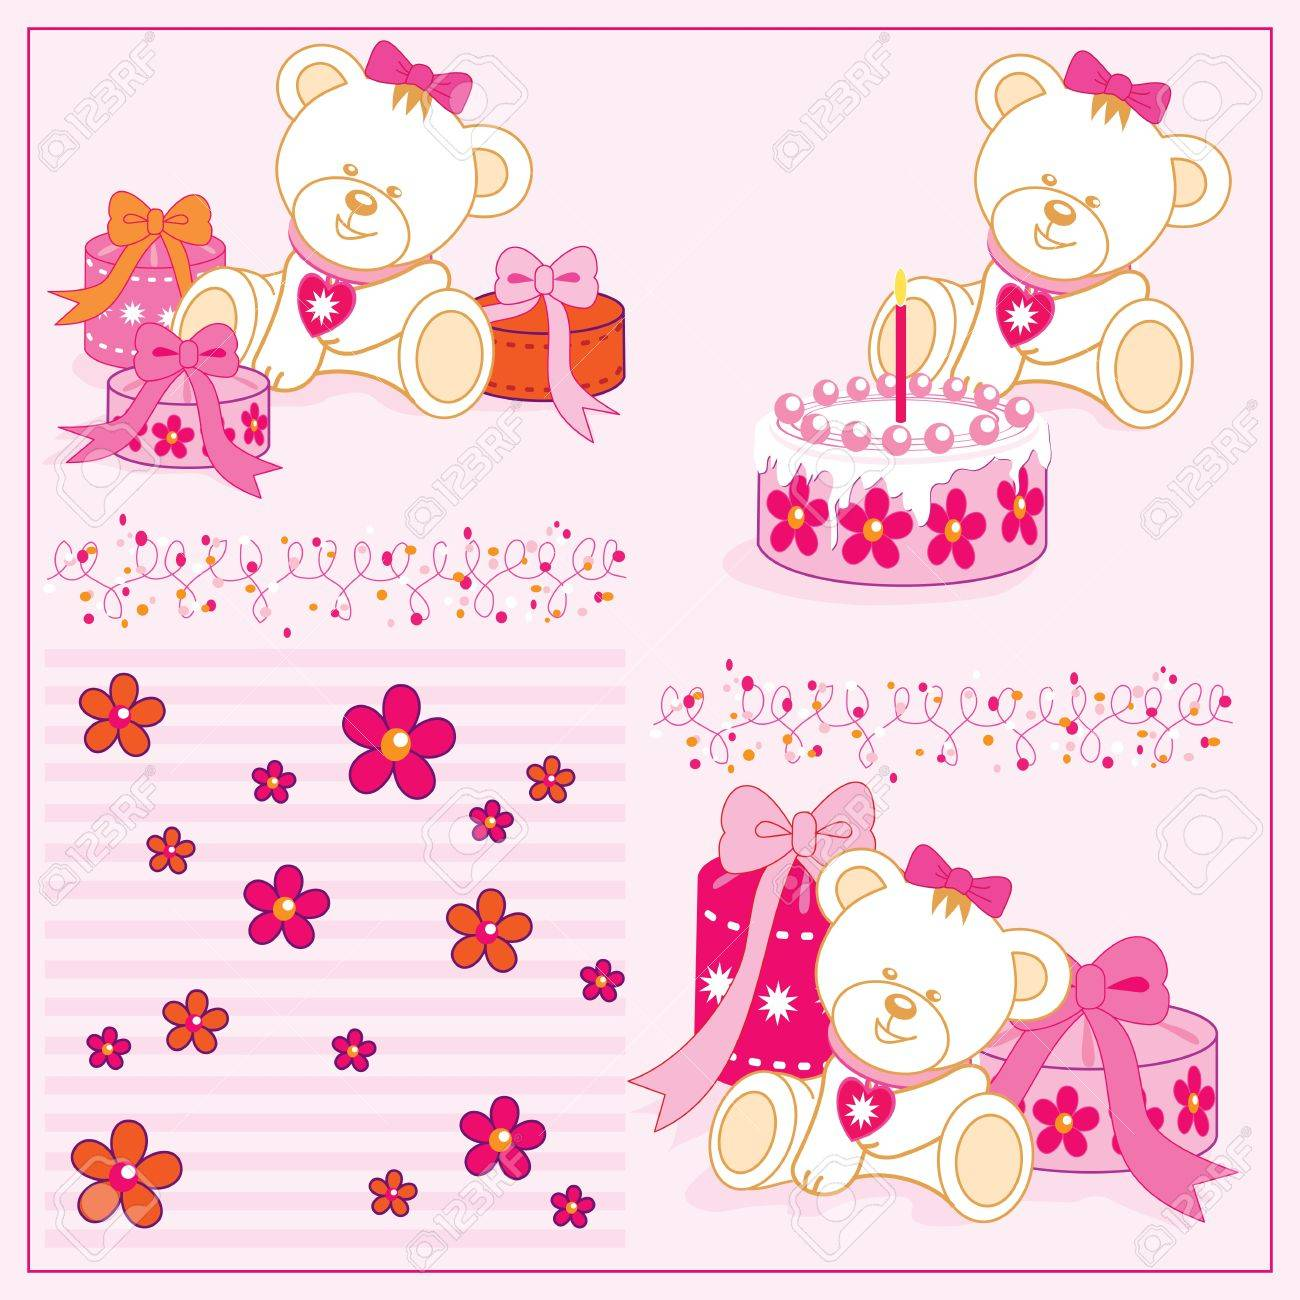 white girl teddy bear, with cake, gifts, illustrations - 14410184